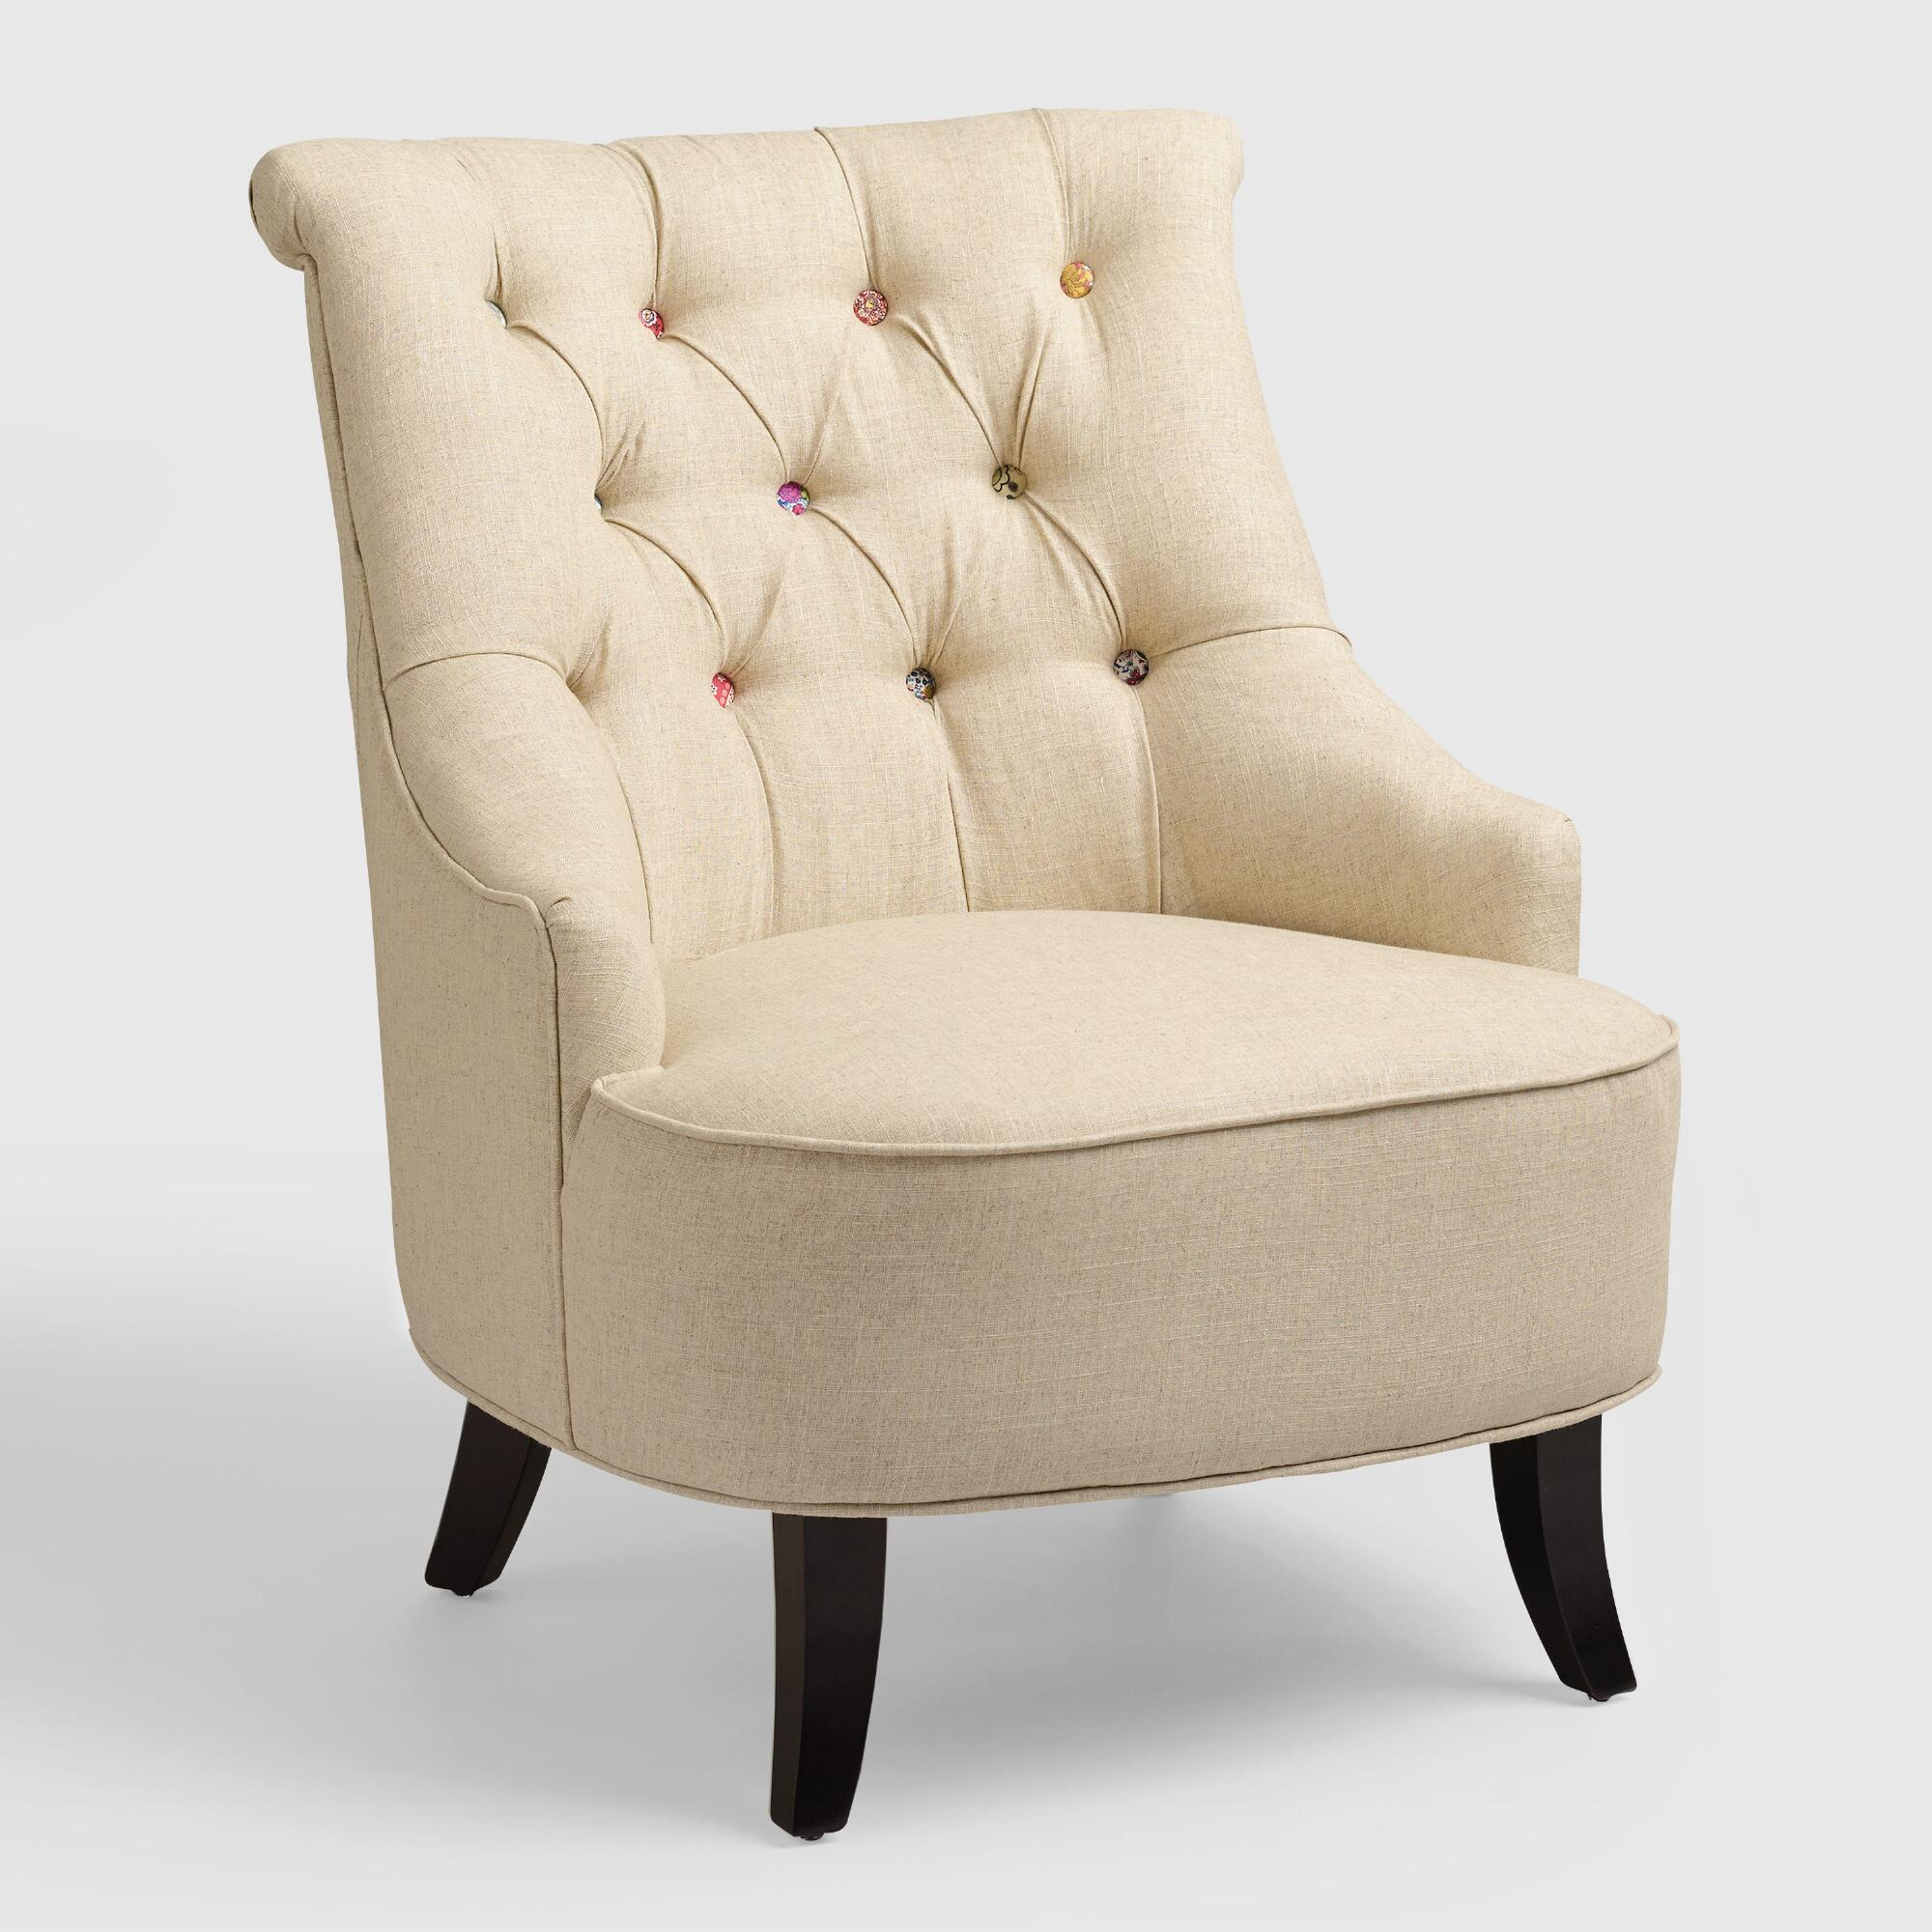 Comfortable arm chairs - Comfortable Armchairs Cute As A Button Erin Chair